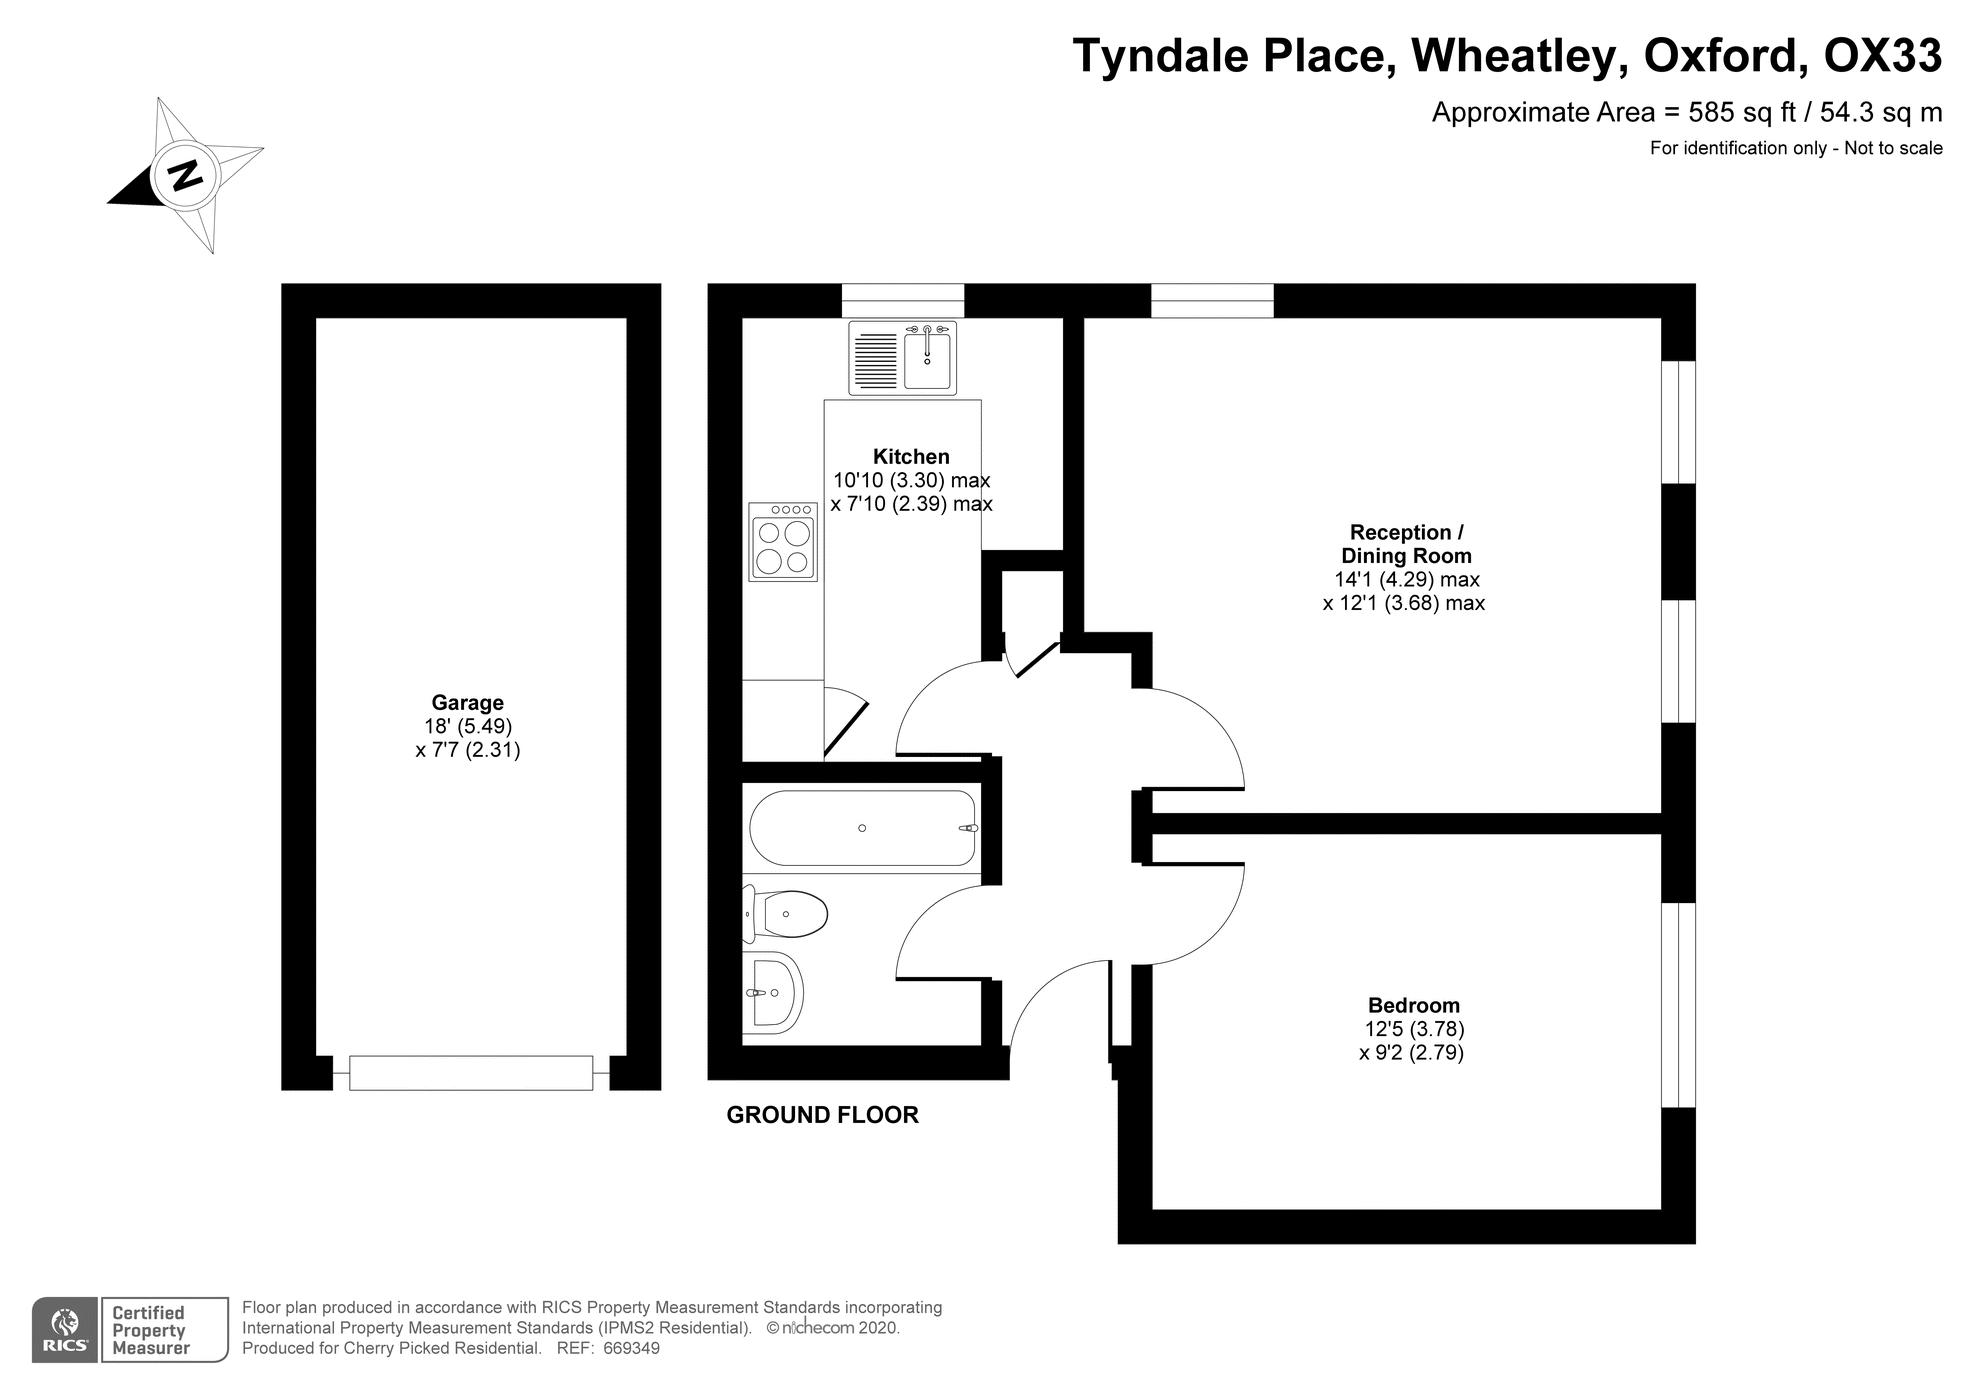 Tyndale Place Wheatley